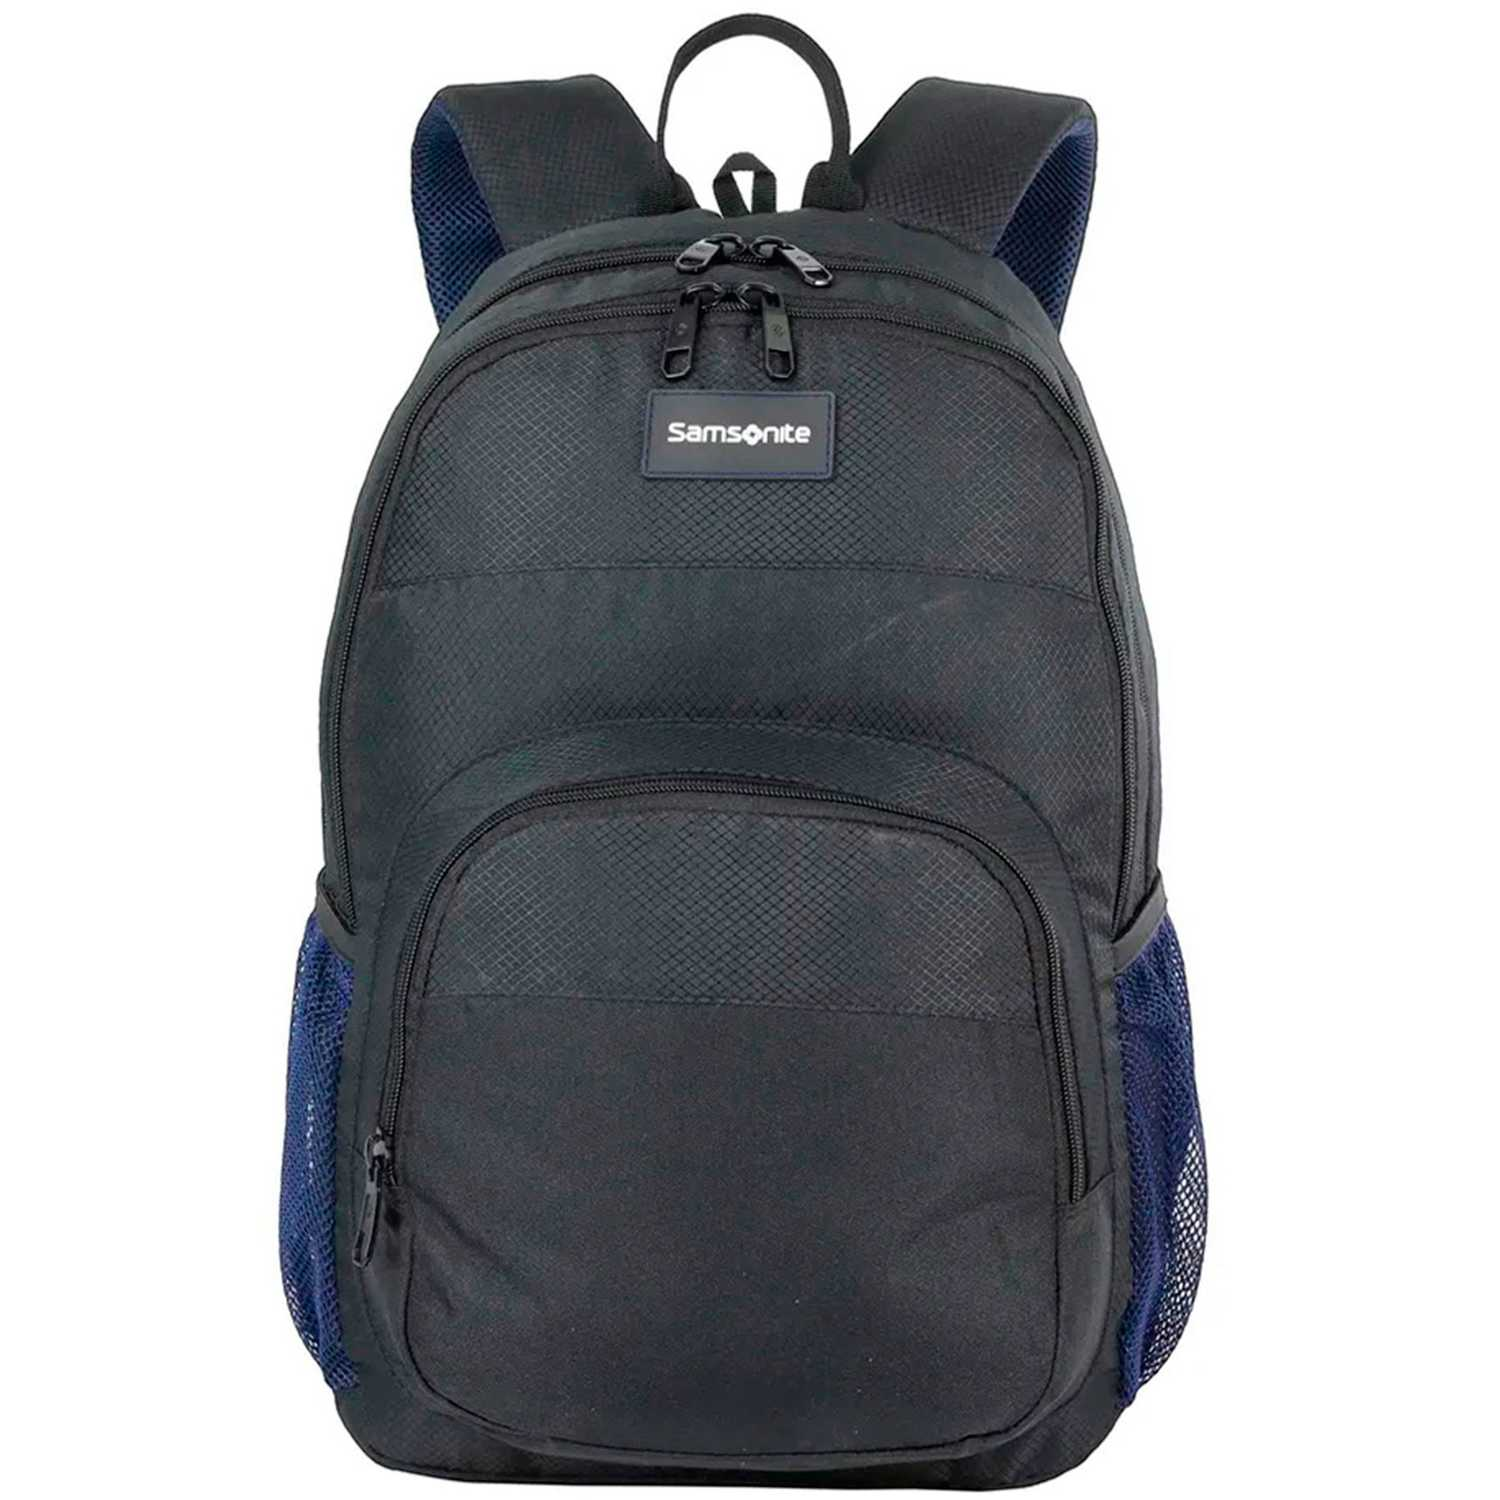 Mochila  Samsonite Negro backpack black ultimate bison